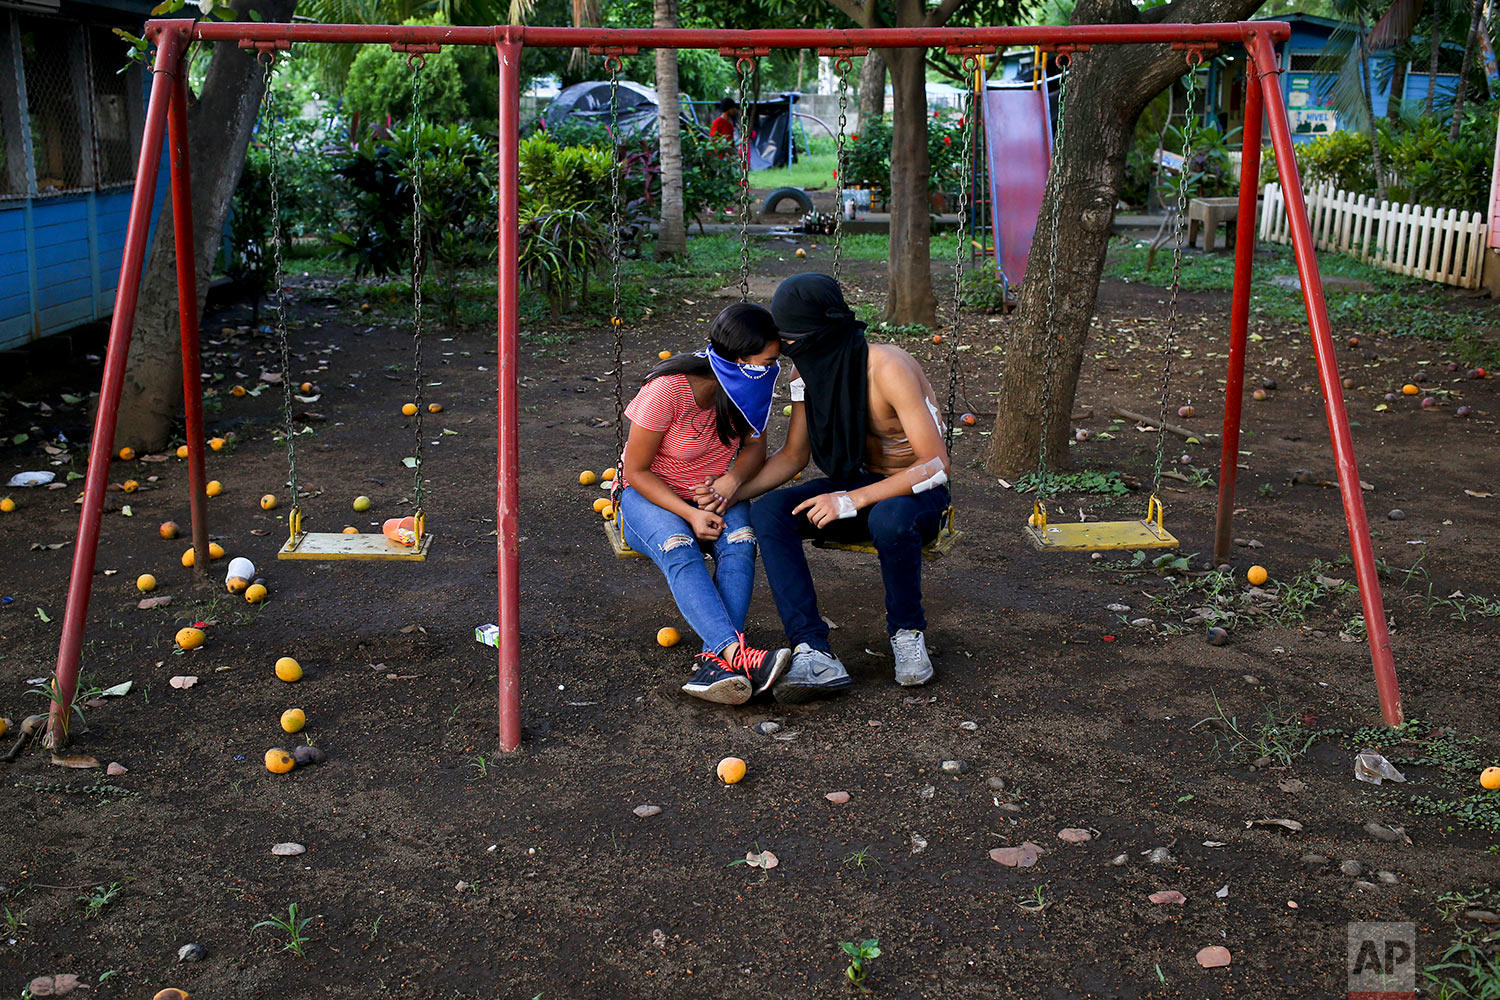 In this June 1, 2018 photo, university students share a moment on a swing set inside the Autonomous University of Nicaragua where anti-government students have barricaded themselves on campus for protection from government security forces and armed supporters in Managua, Nicaragua. (AP Photo/Esteban Felix)